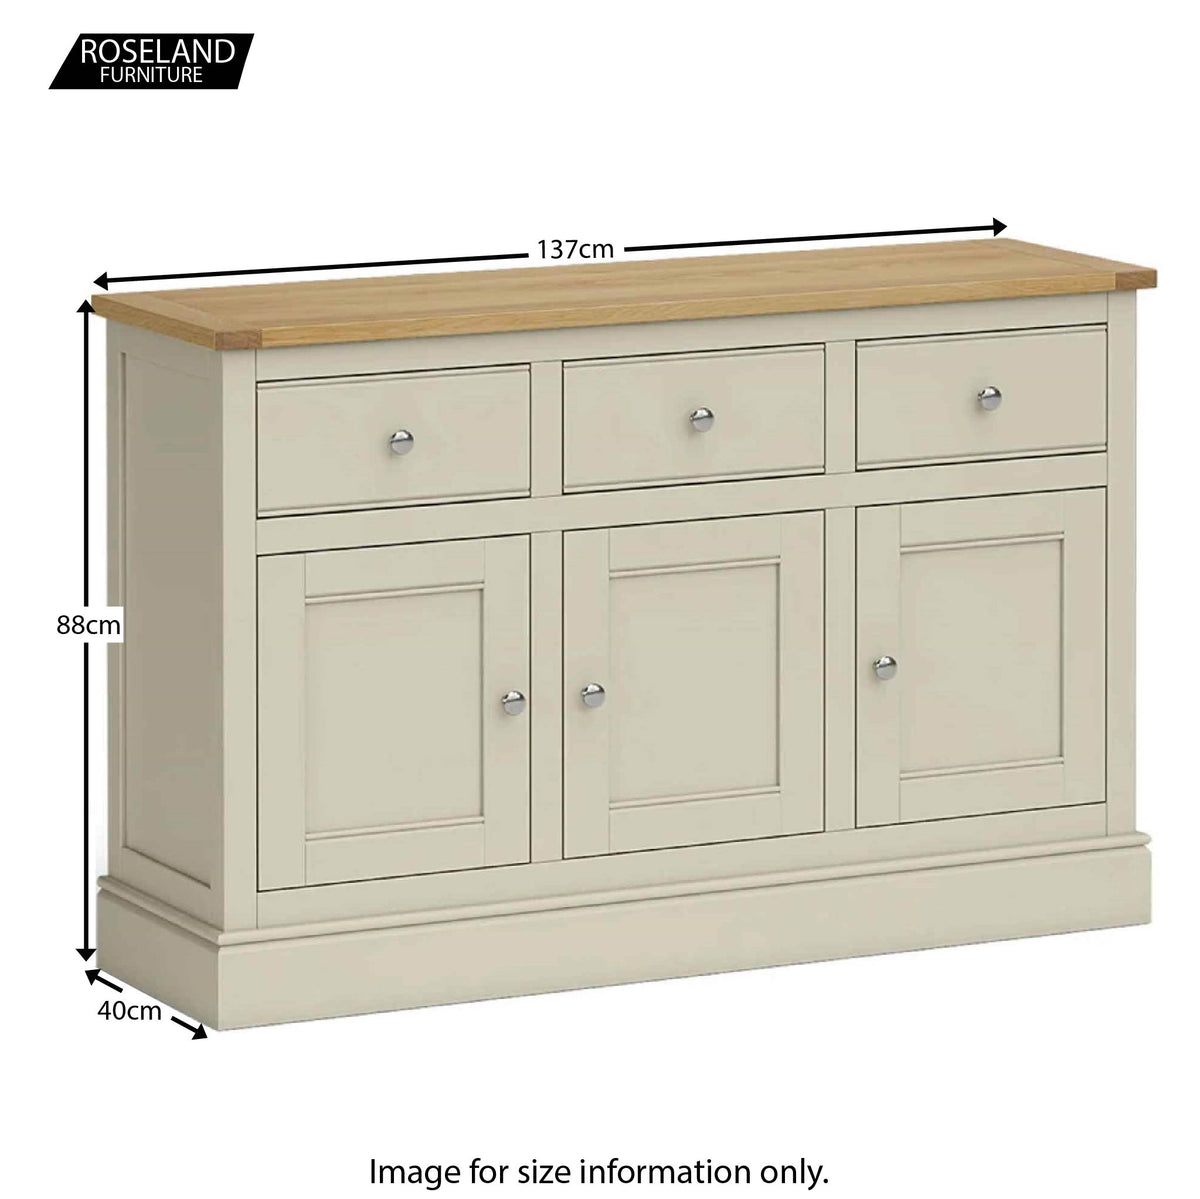 Chichester Large Sideboard in Ledum Green - Size Guide